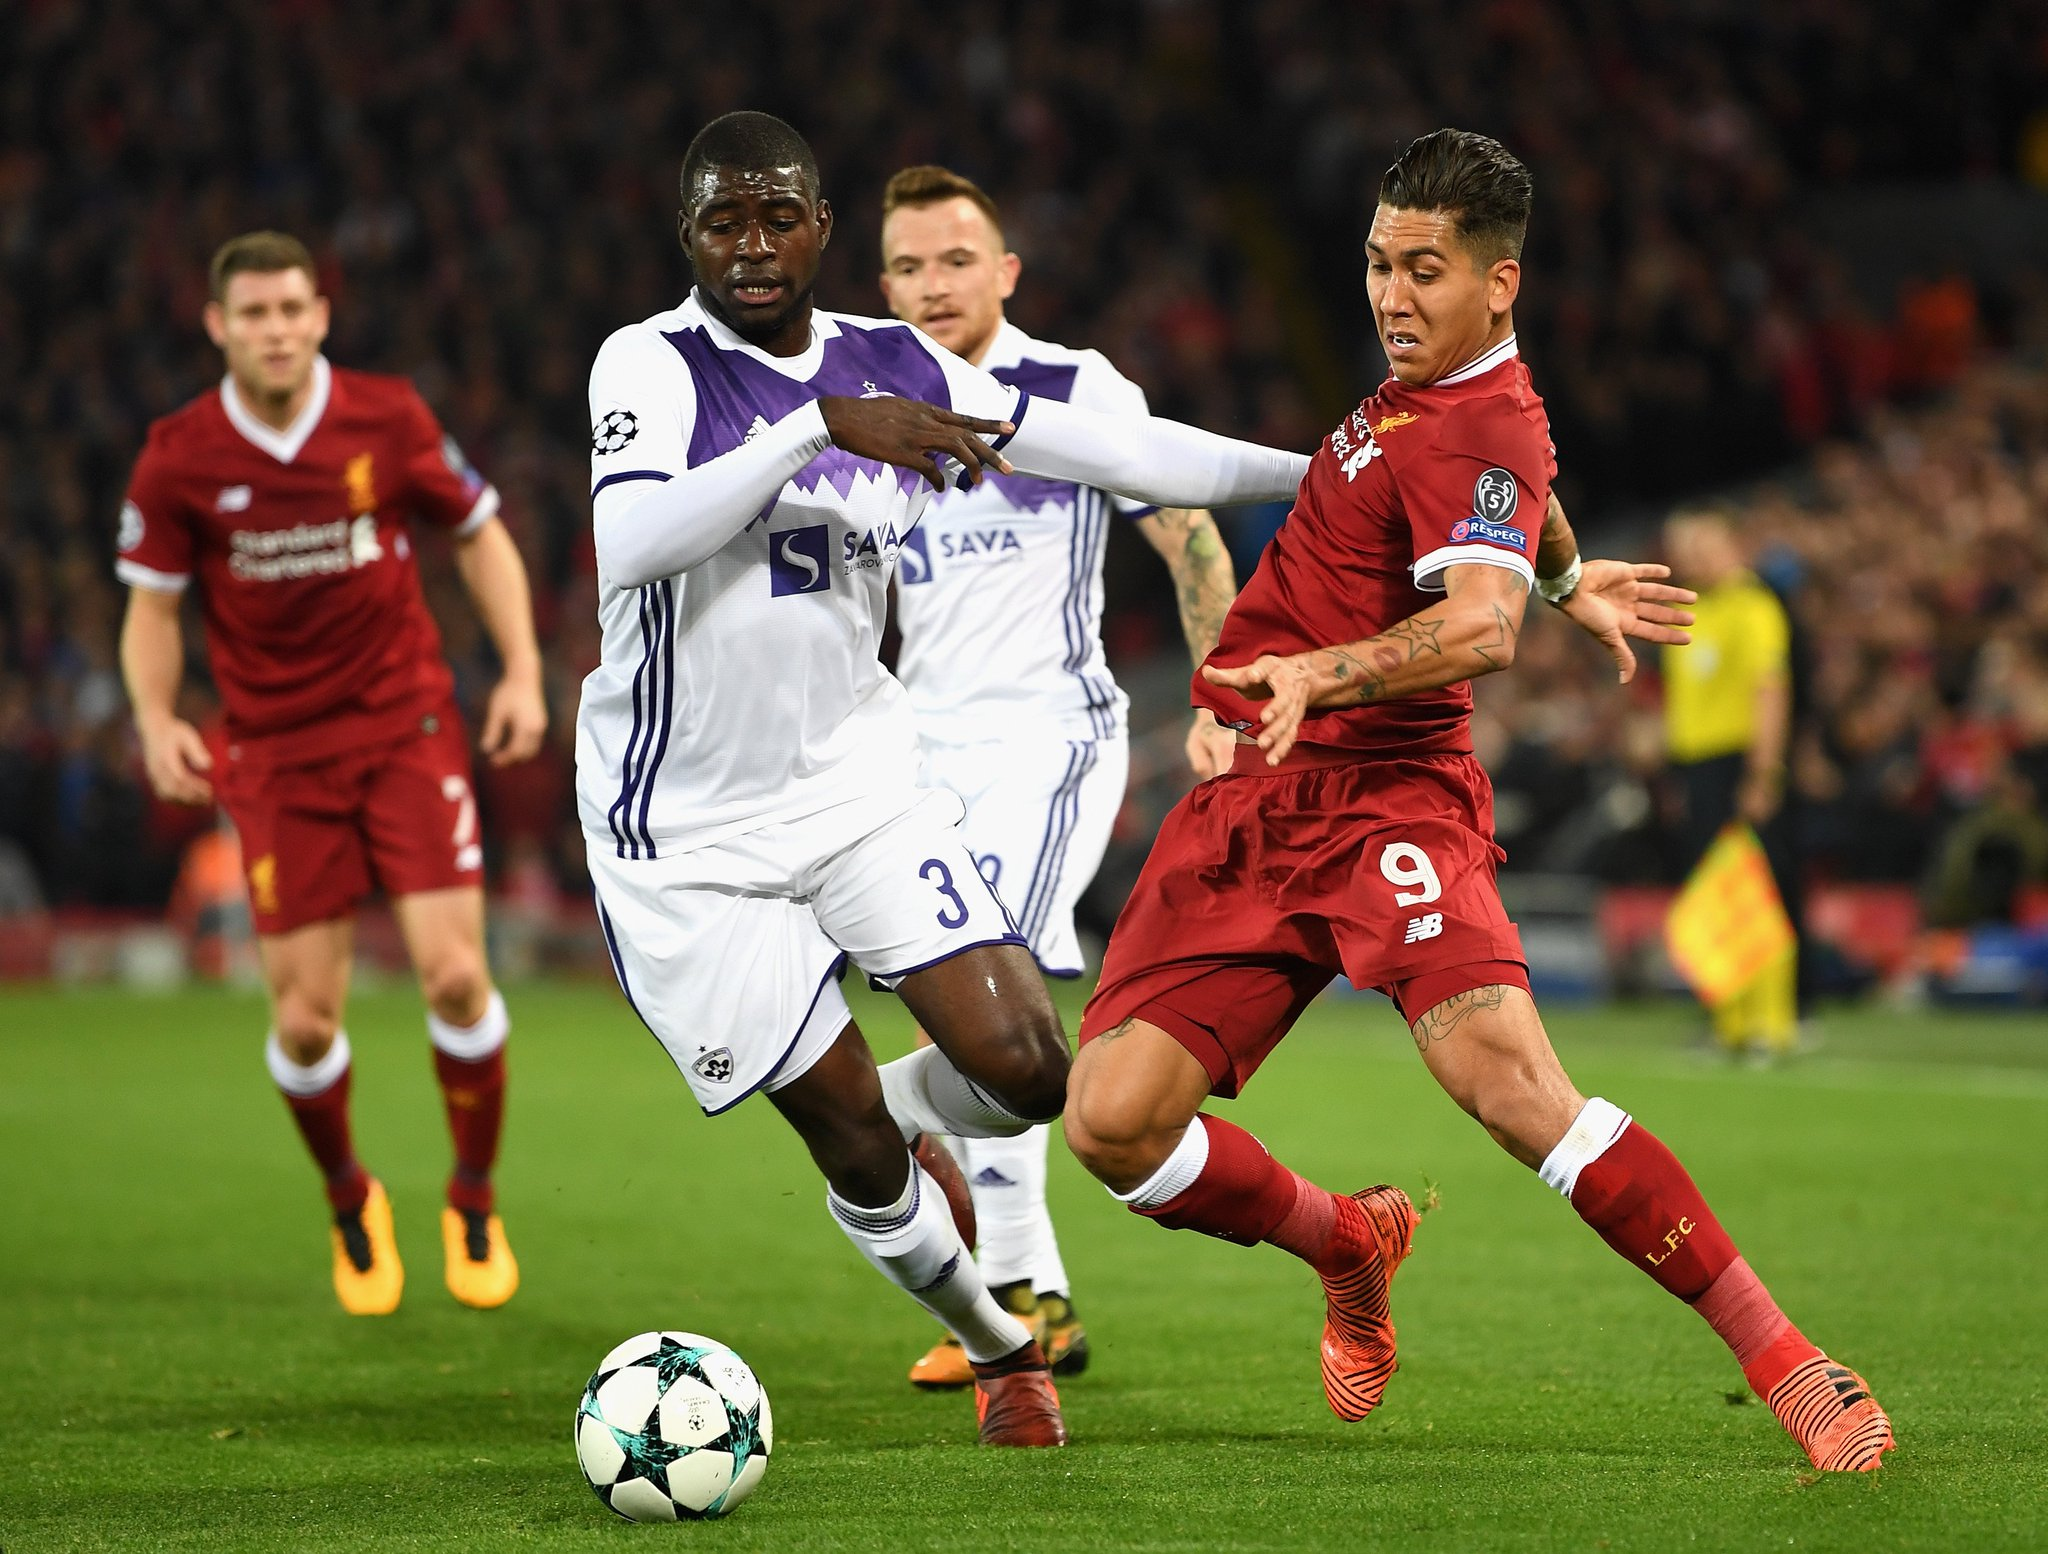 Liverpool vs Maribor Highlights